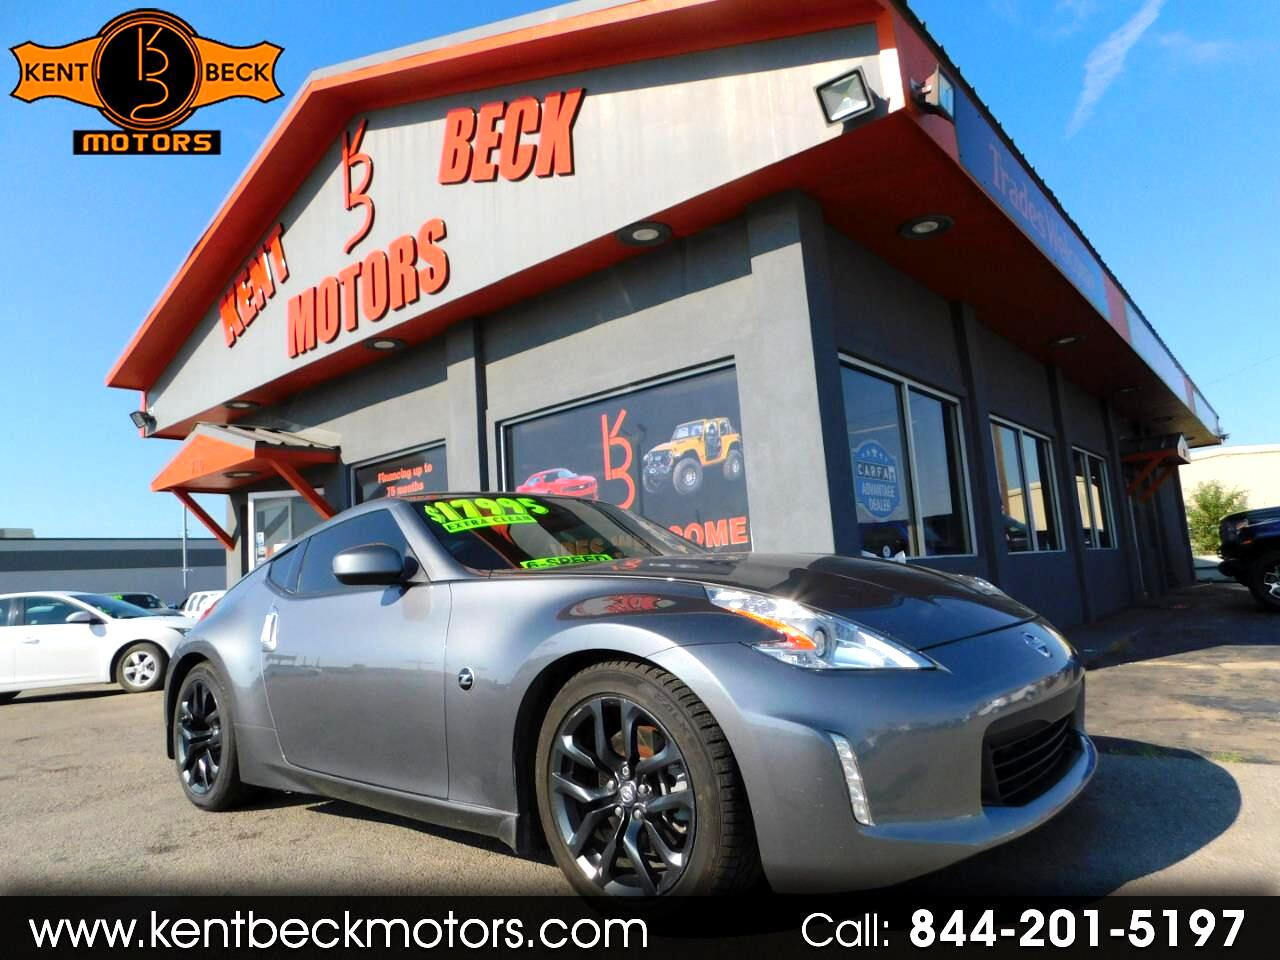 2016 Nissan Z 370Z Coupe 6MT